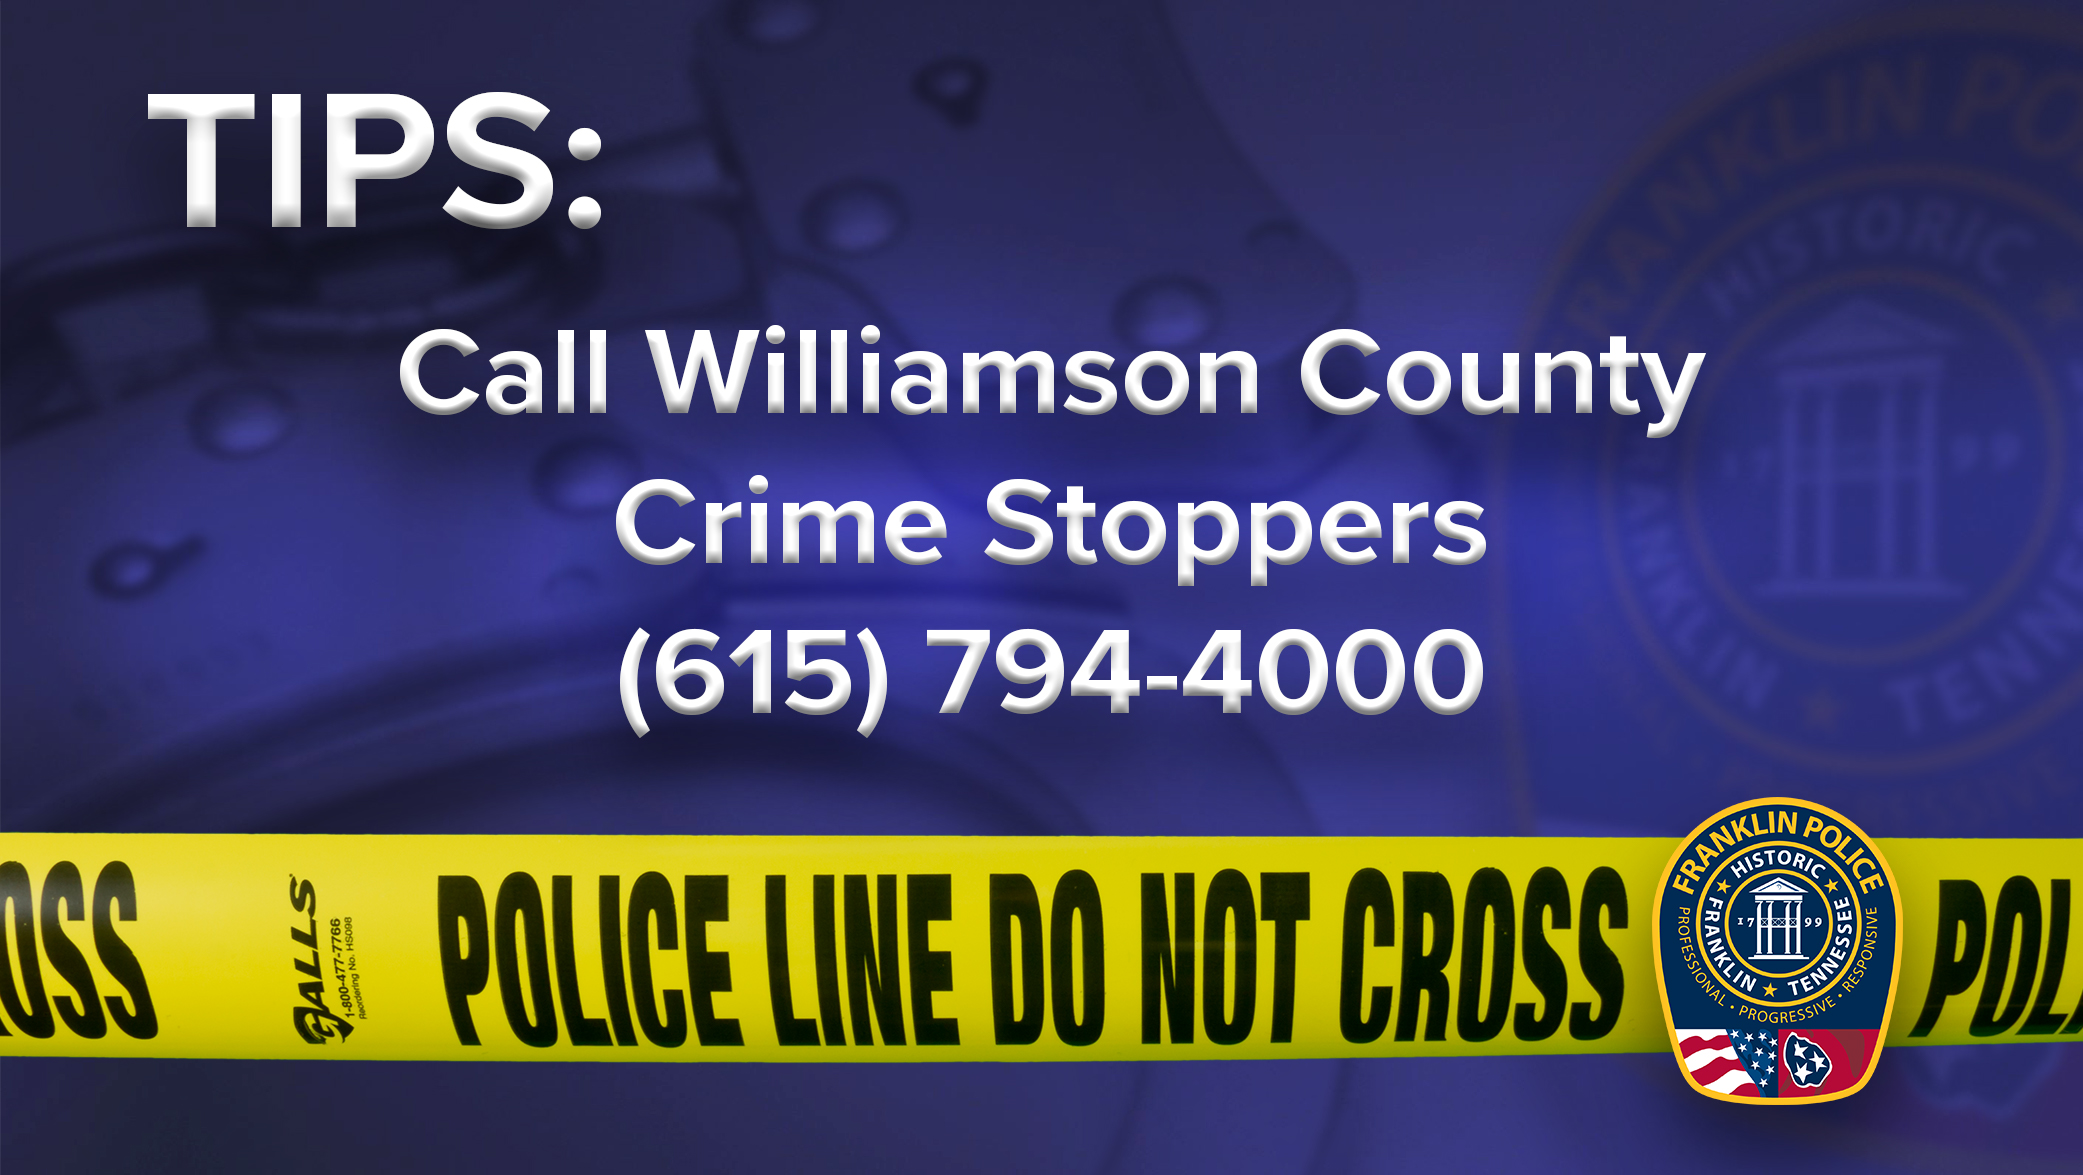 Central Virginia Crime Stoppers